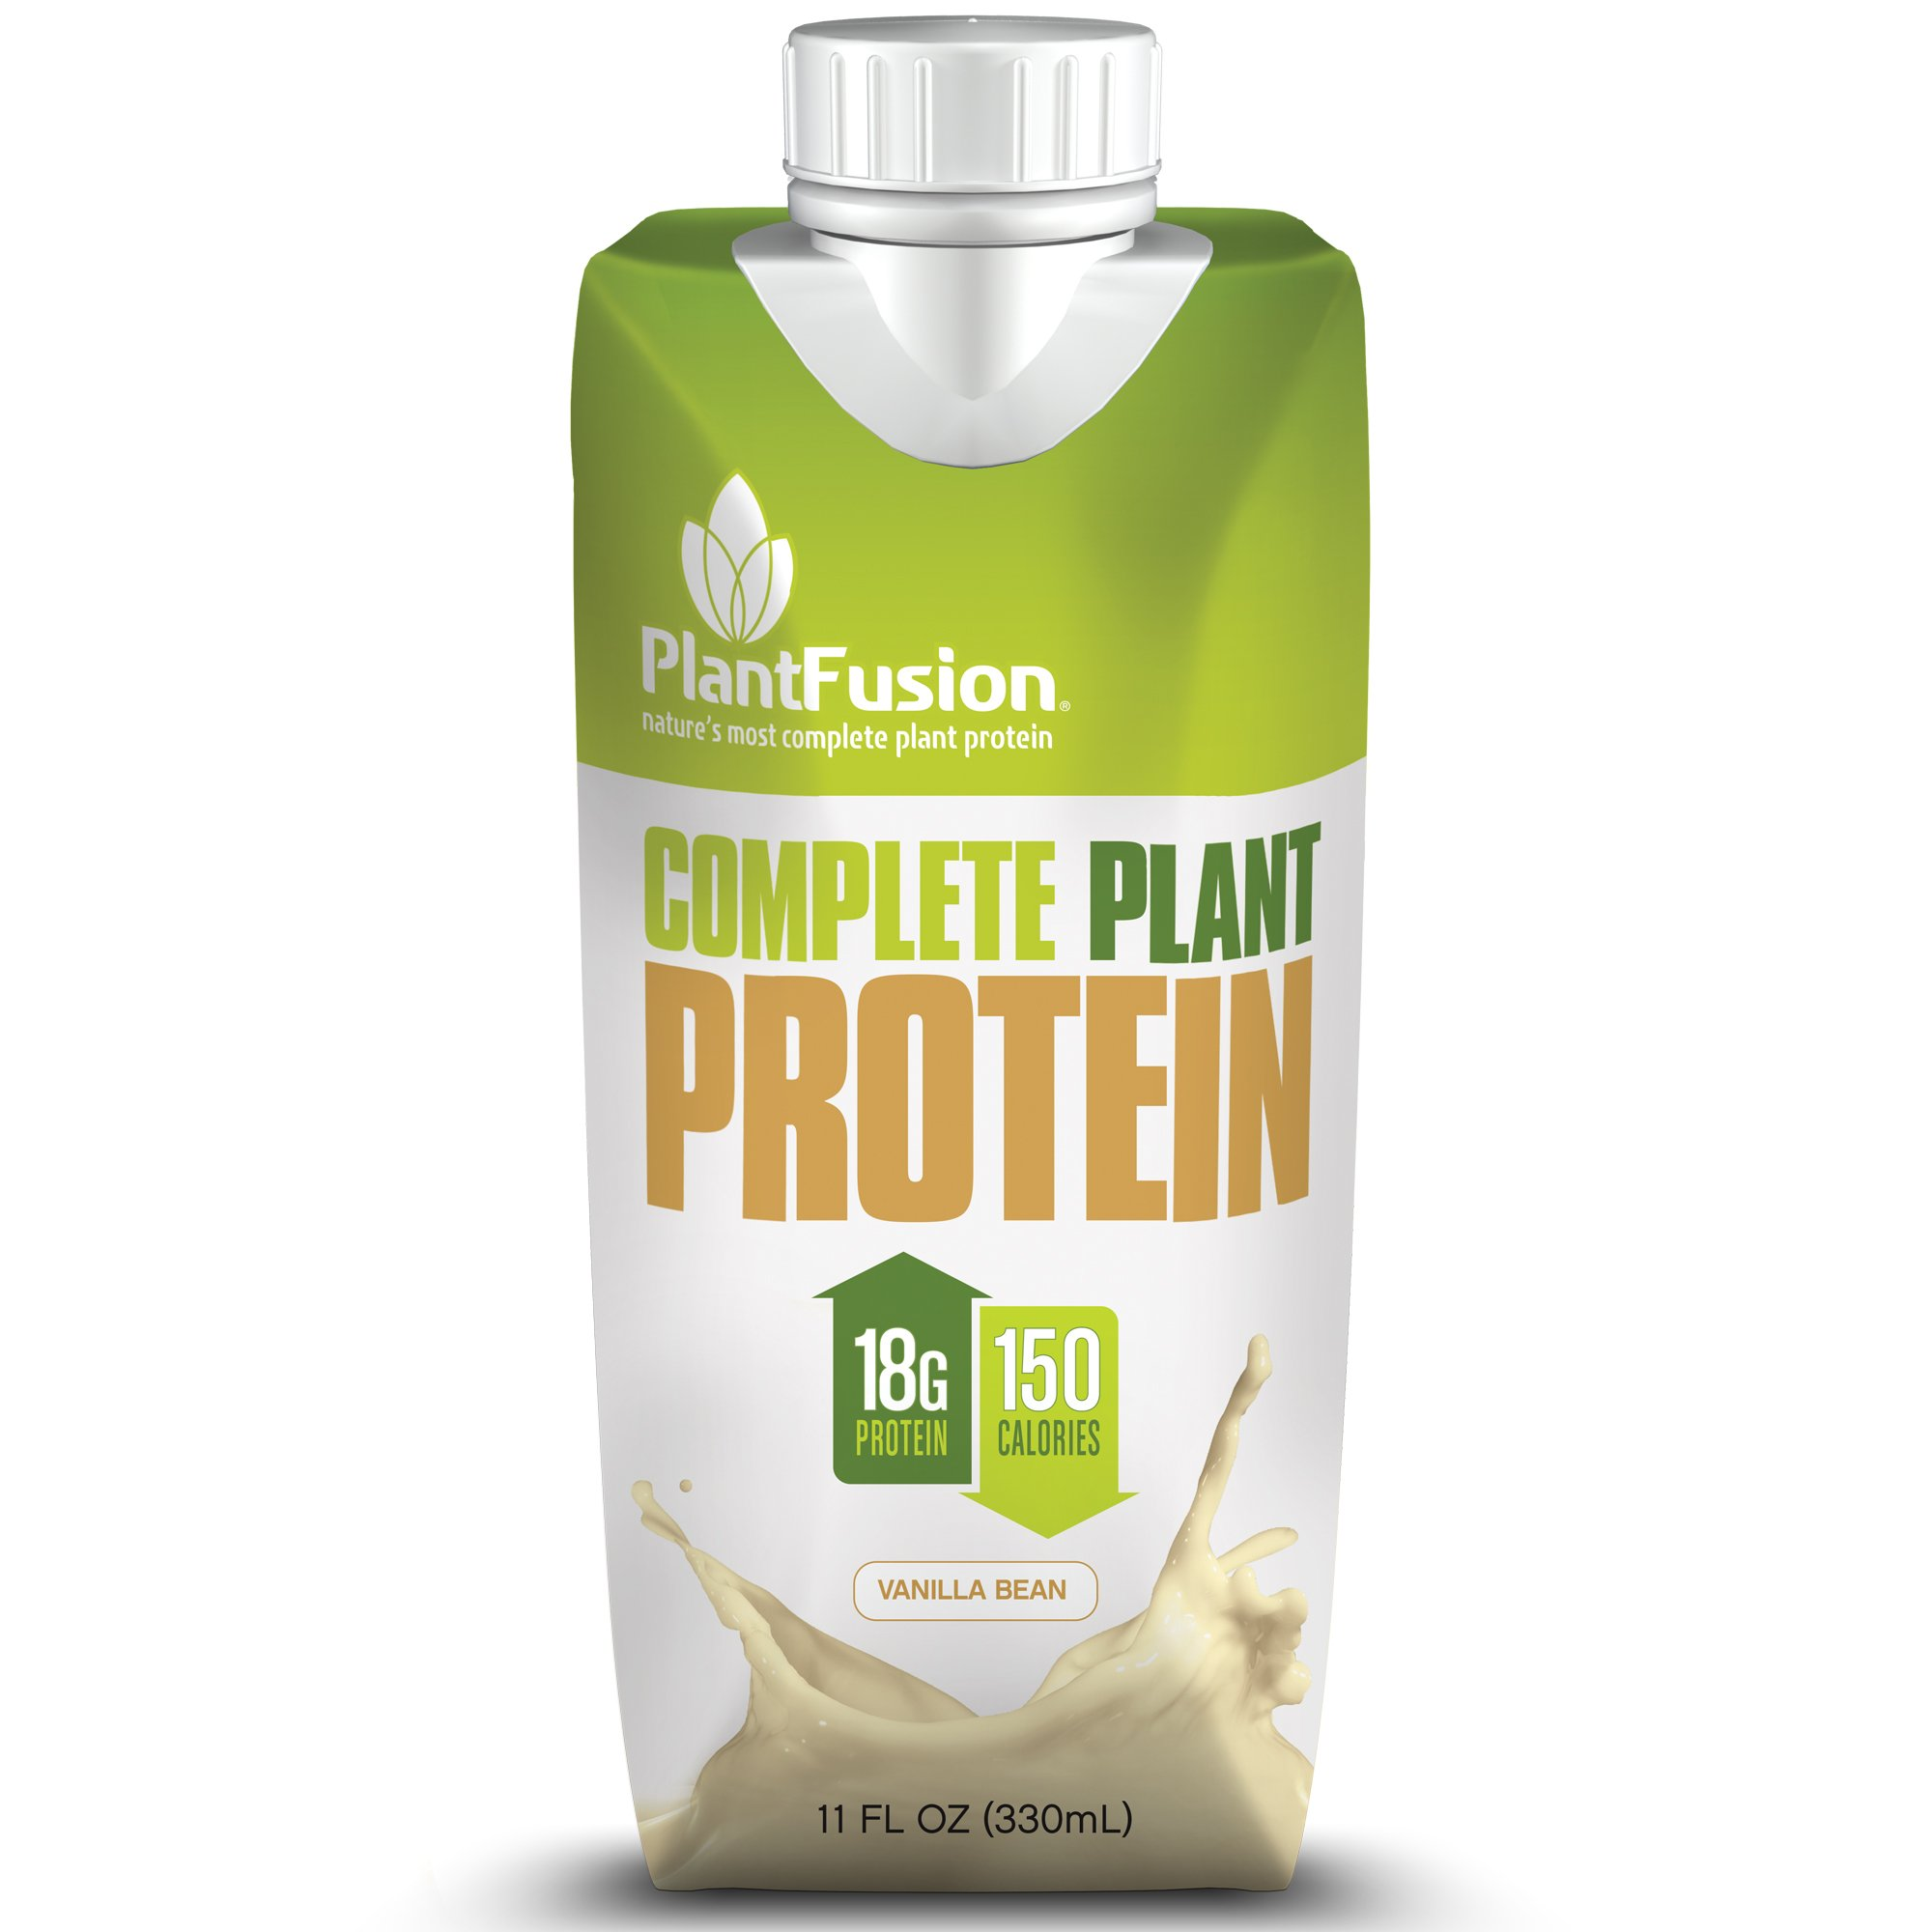 PlantFusion Complete Ready-to-Drink Plant-Based Protein Shake, Vanilla Bean, 11 oz  Carton, 12 Count, 18 g of Protein, 150 Calories, Non-GMO, Gluten Free